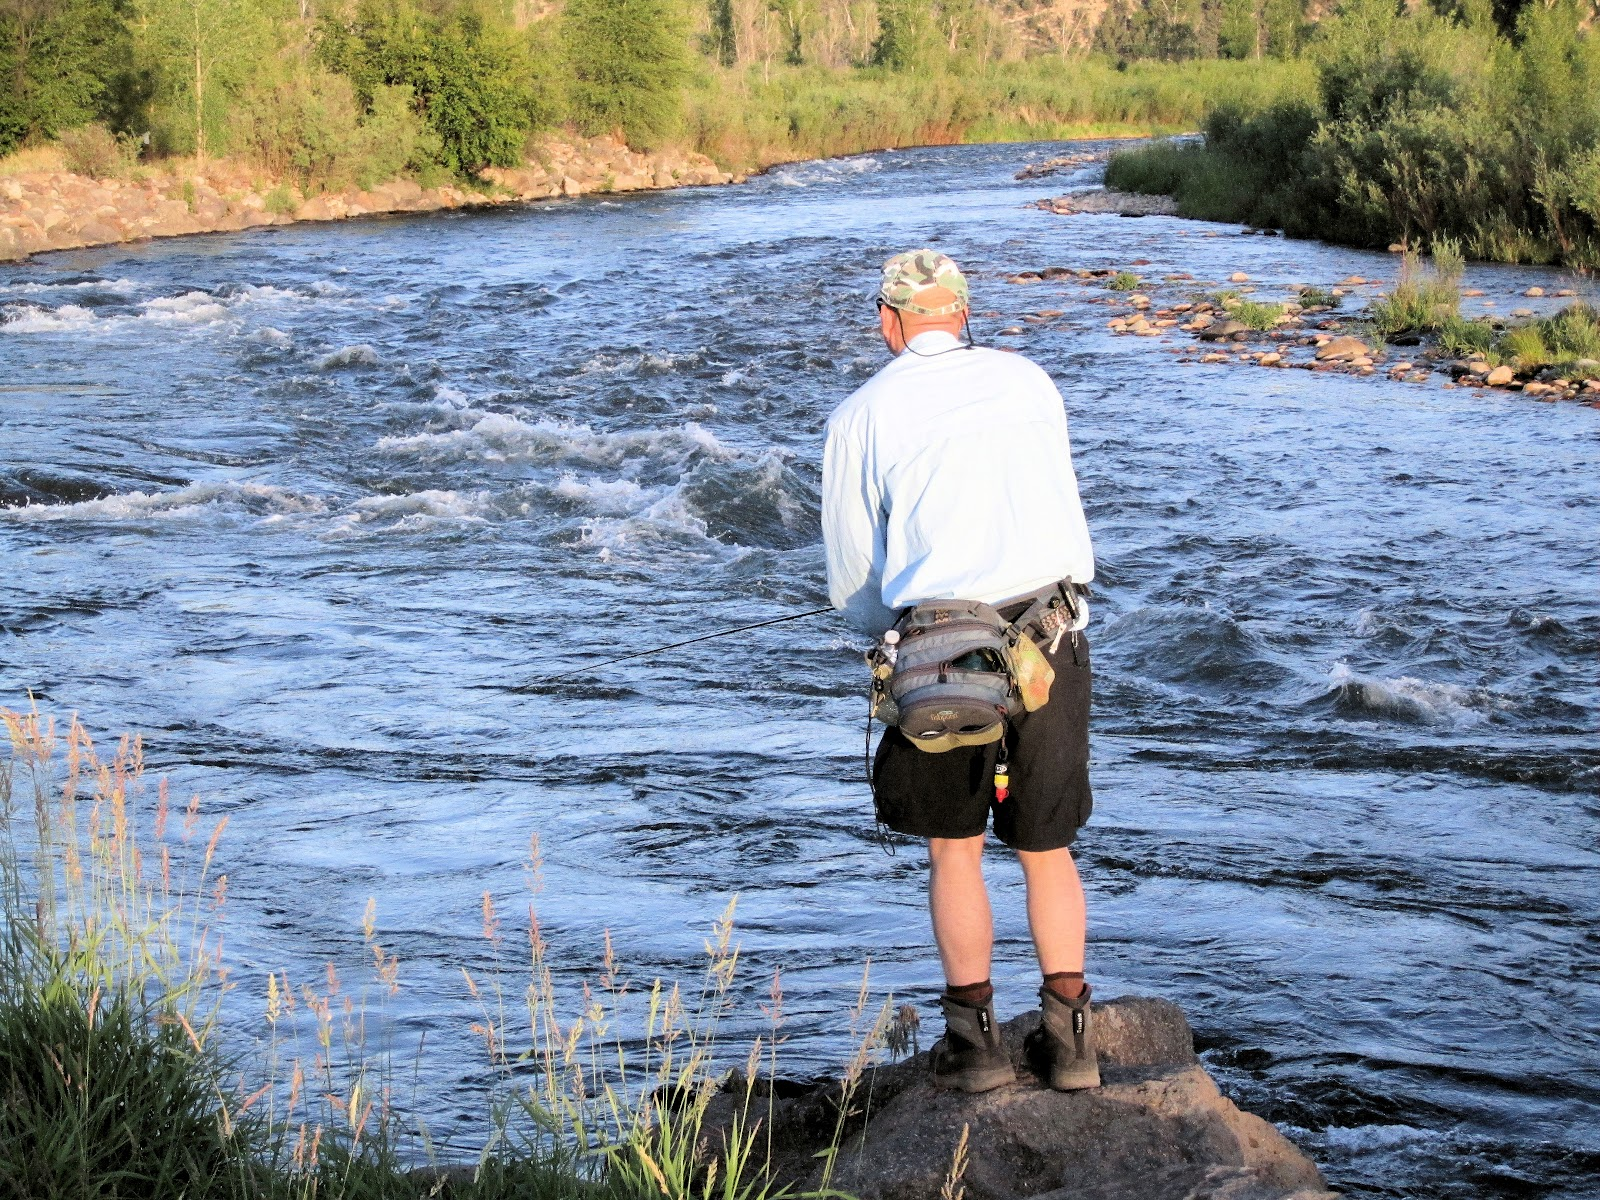 Jay scott outdoors fly fishing the roaring fork river for Roaring river fishing hours